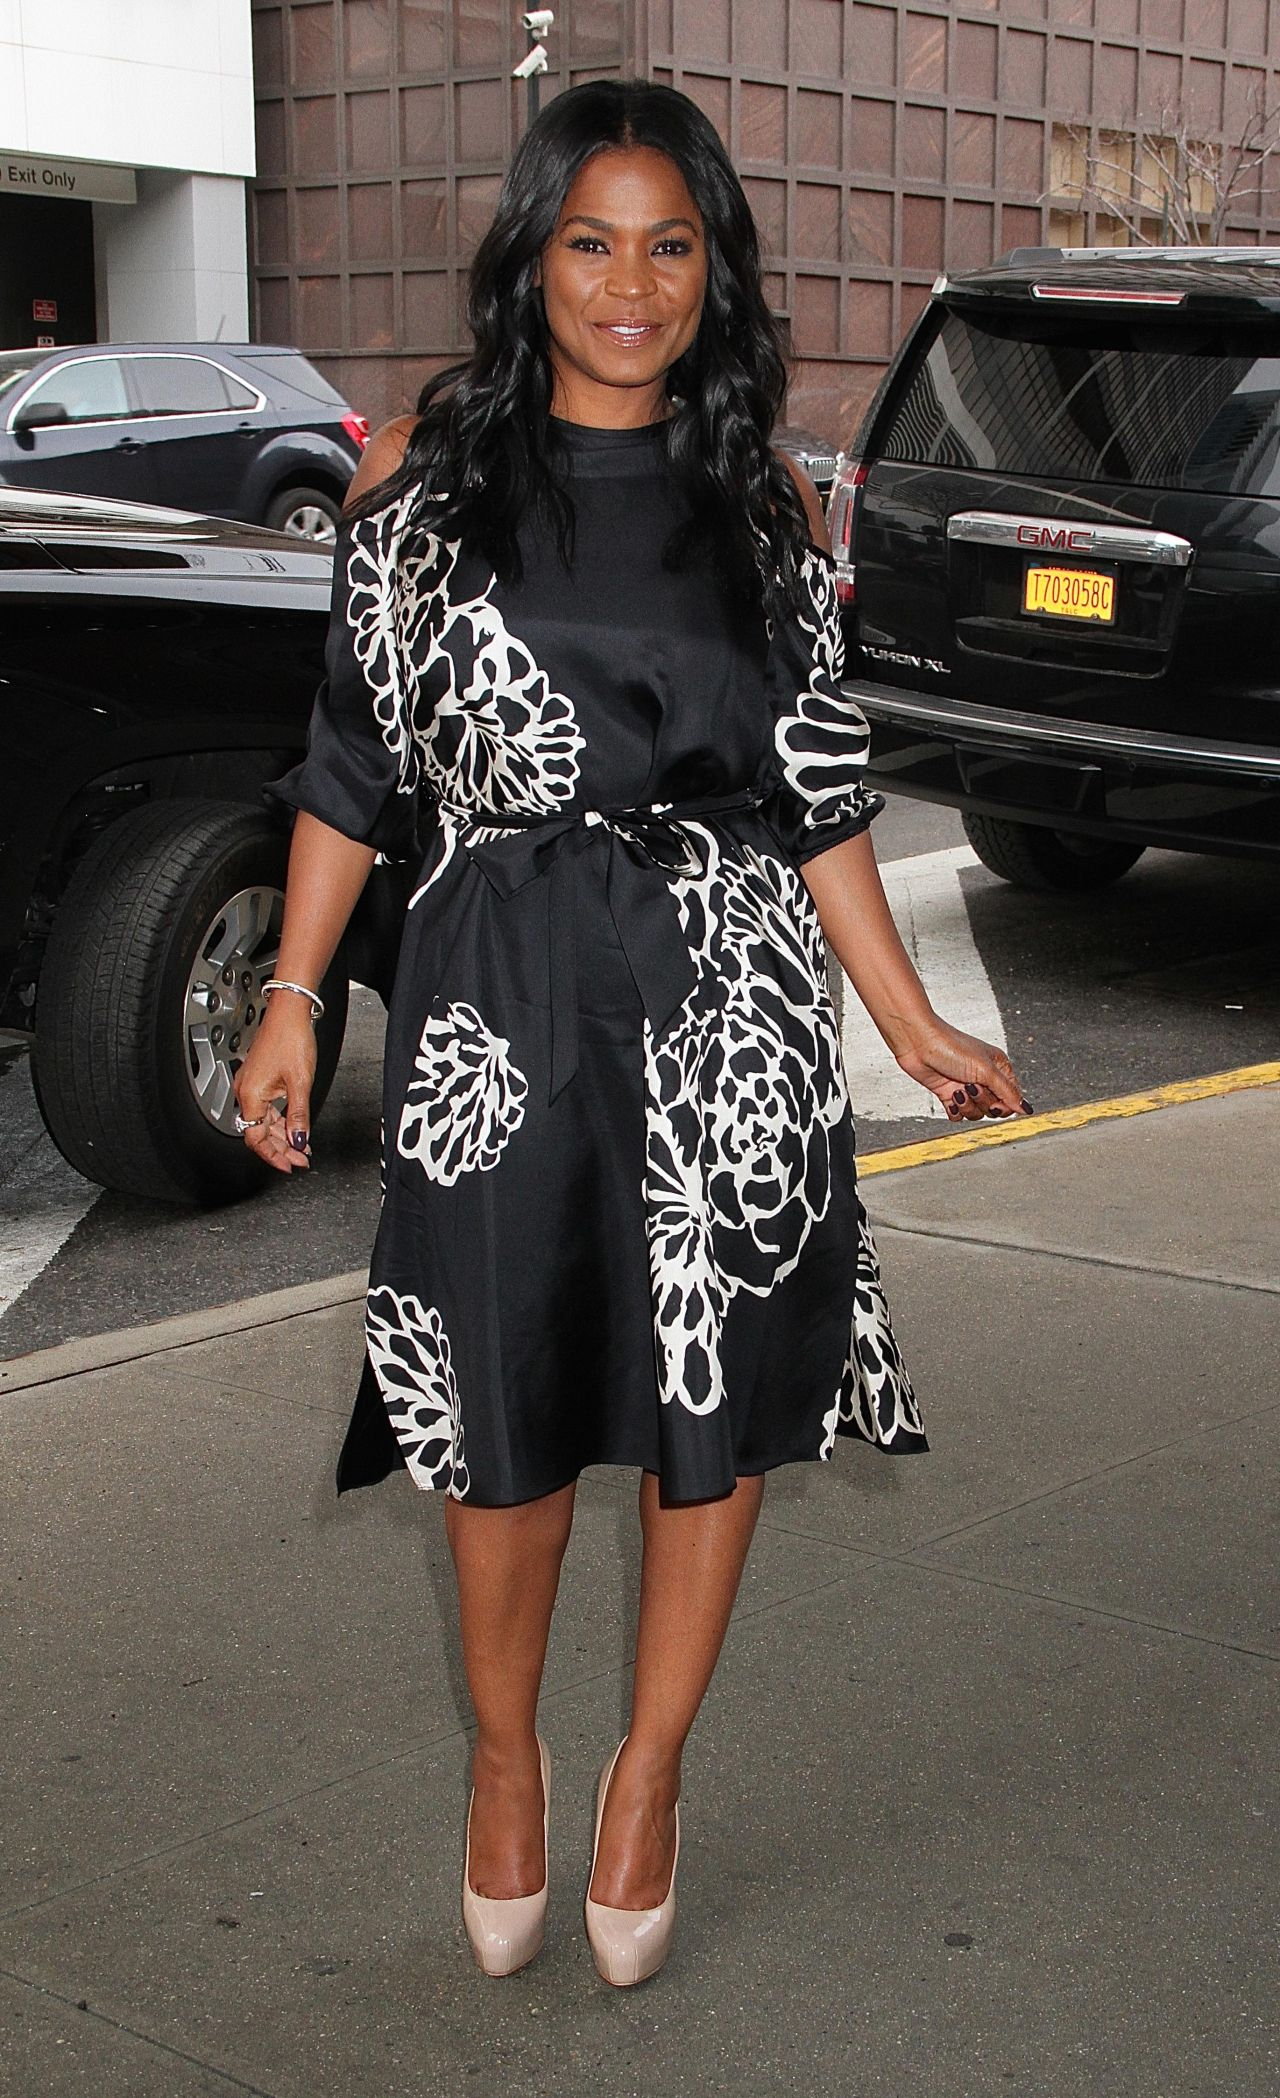 Marvelous Nia Long At The Harry Talk Show In New York 1 12 2017 Short Hairstyles Gunalazisus